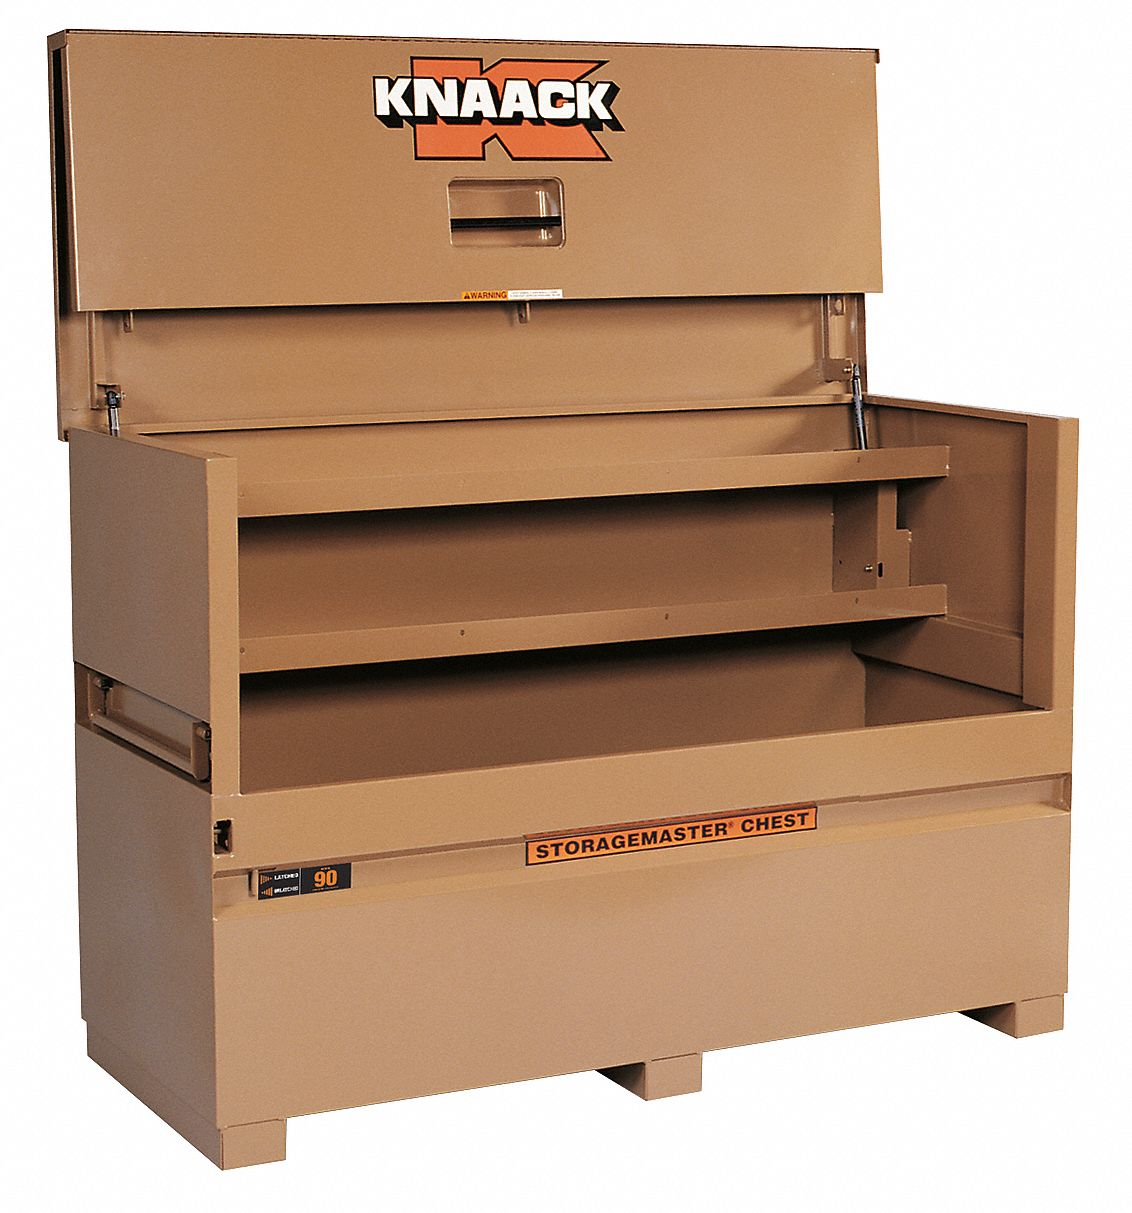 72 in Overall Width,  30 in Overall Depth,  49 in Overall Height,  Piano-Style Jobsite Box,  Tan